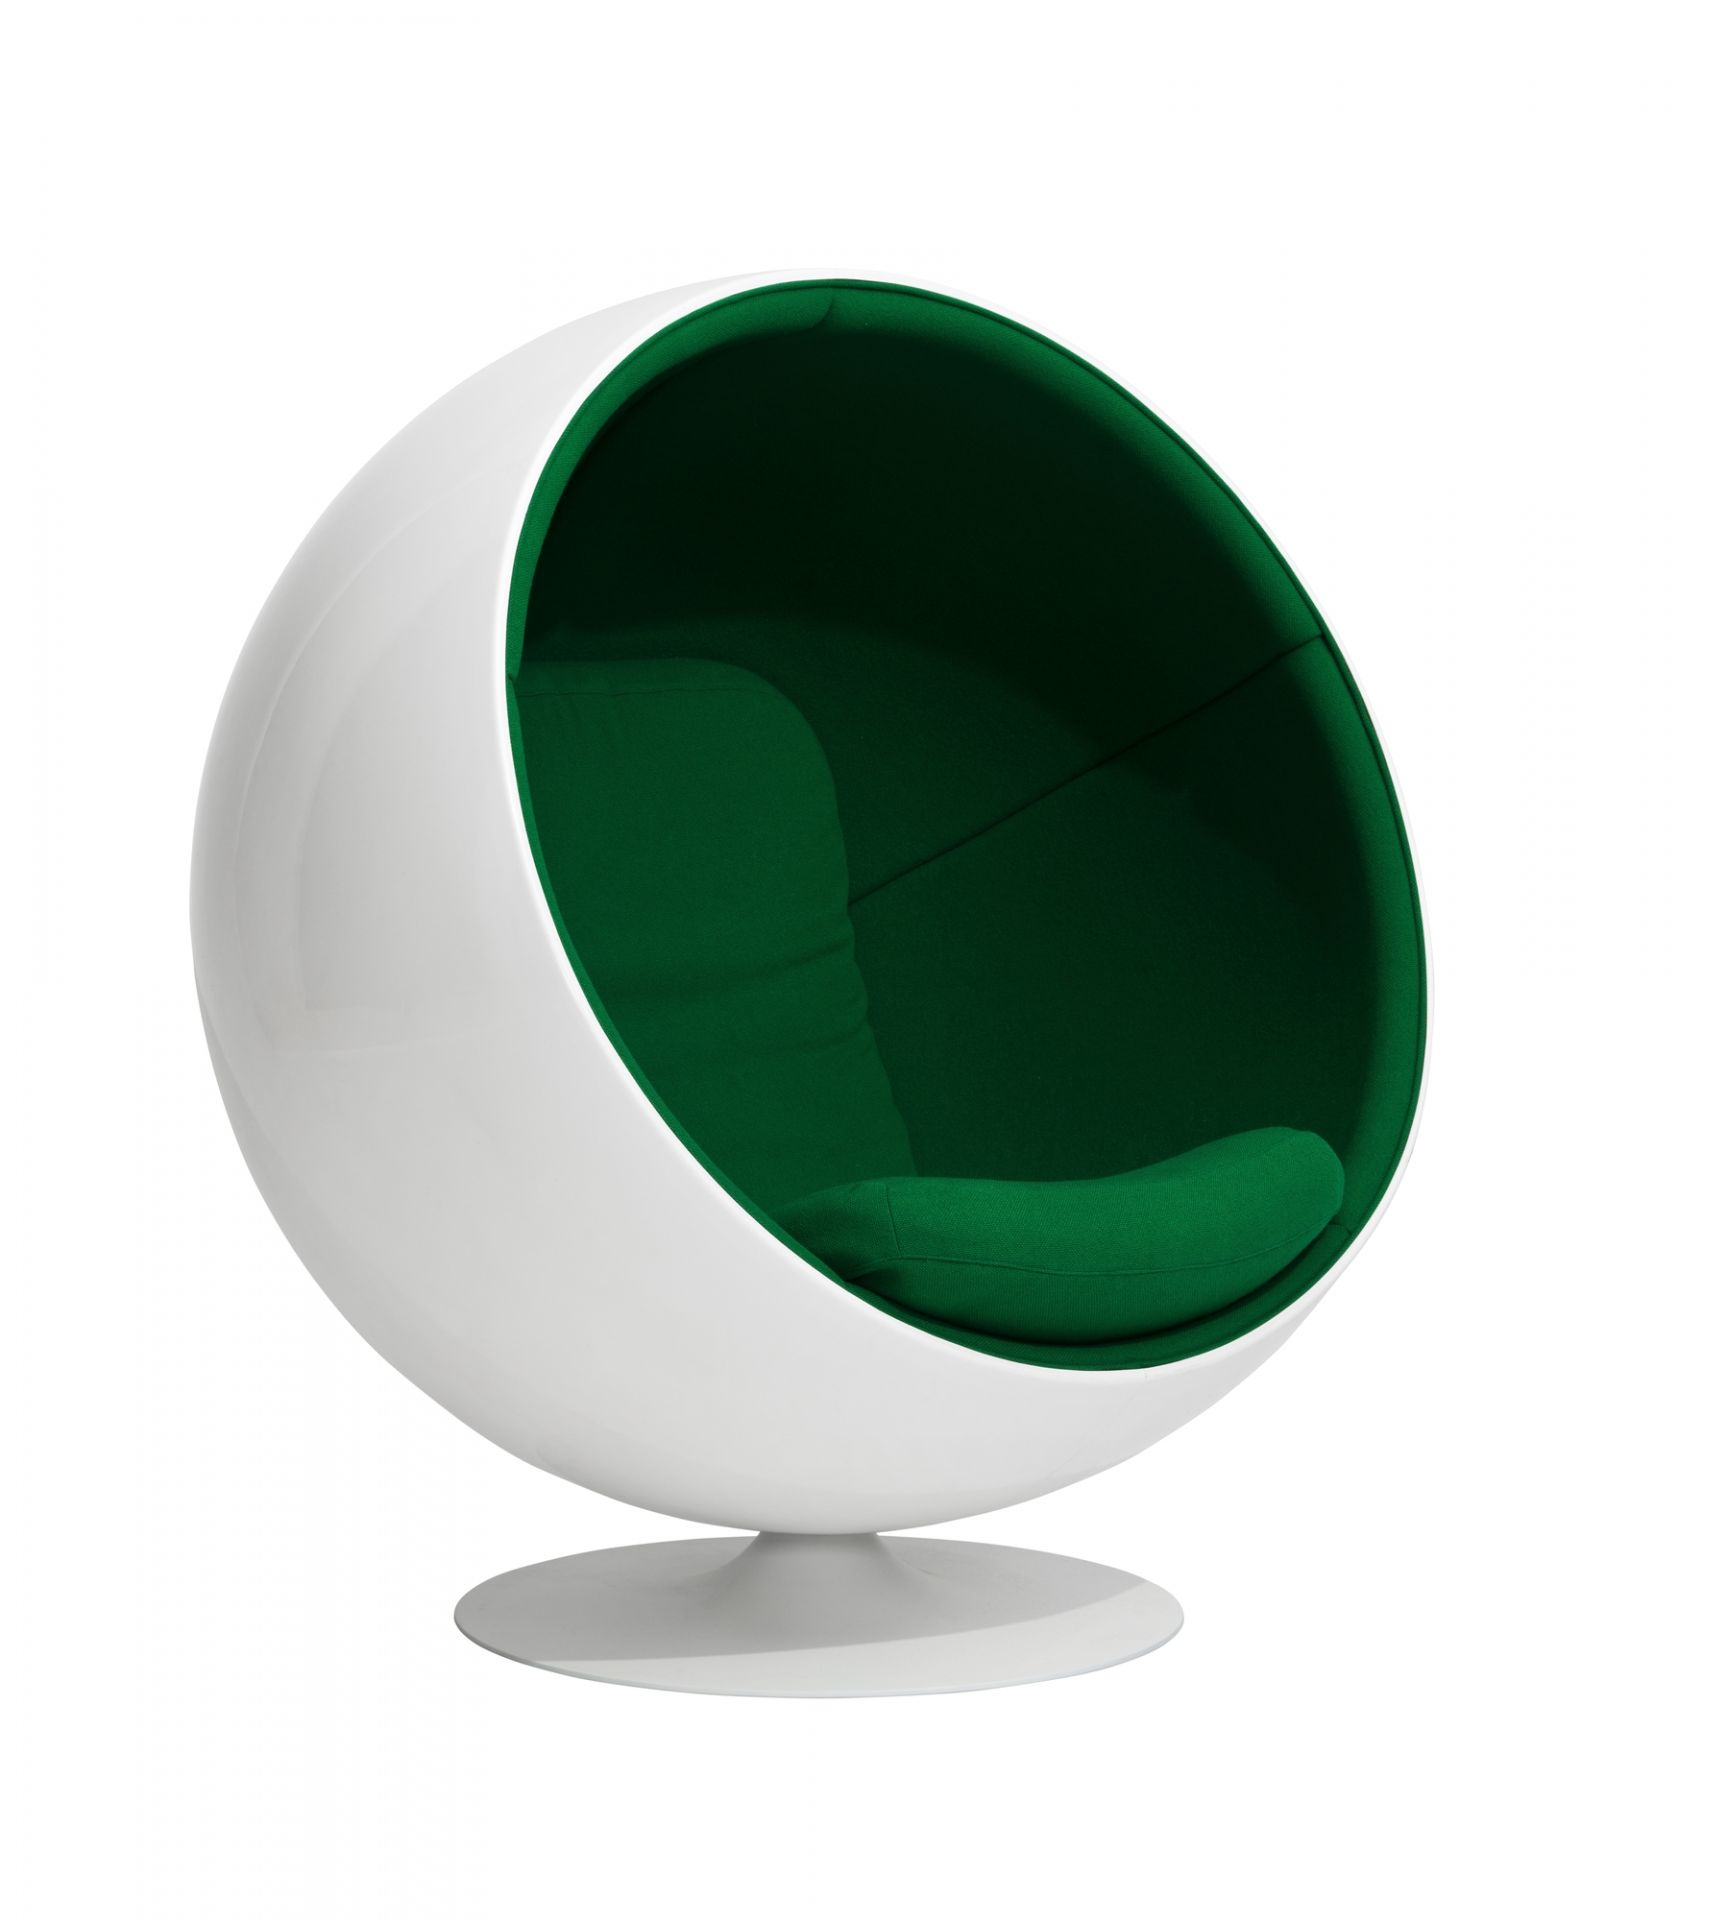 Ball Chair Sessel Eero Aarnio Originals